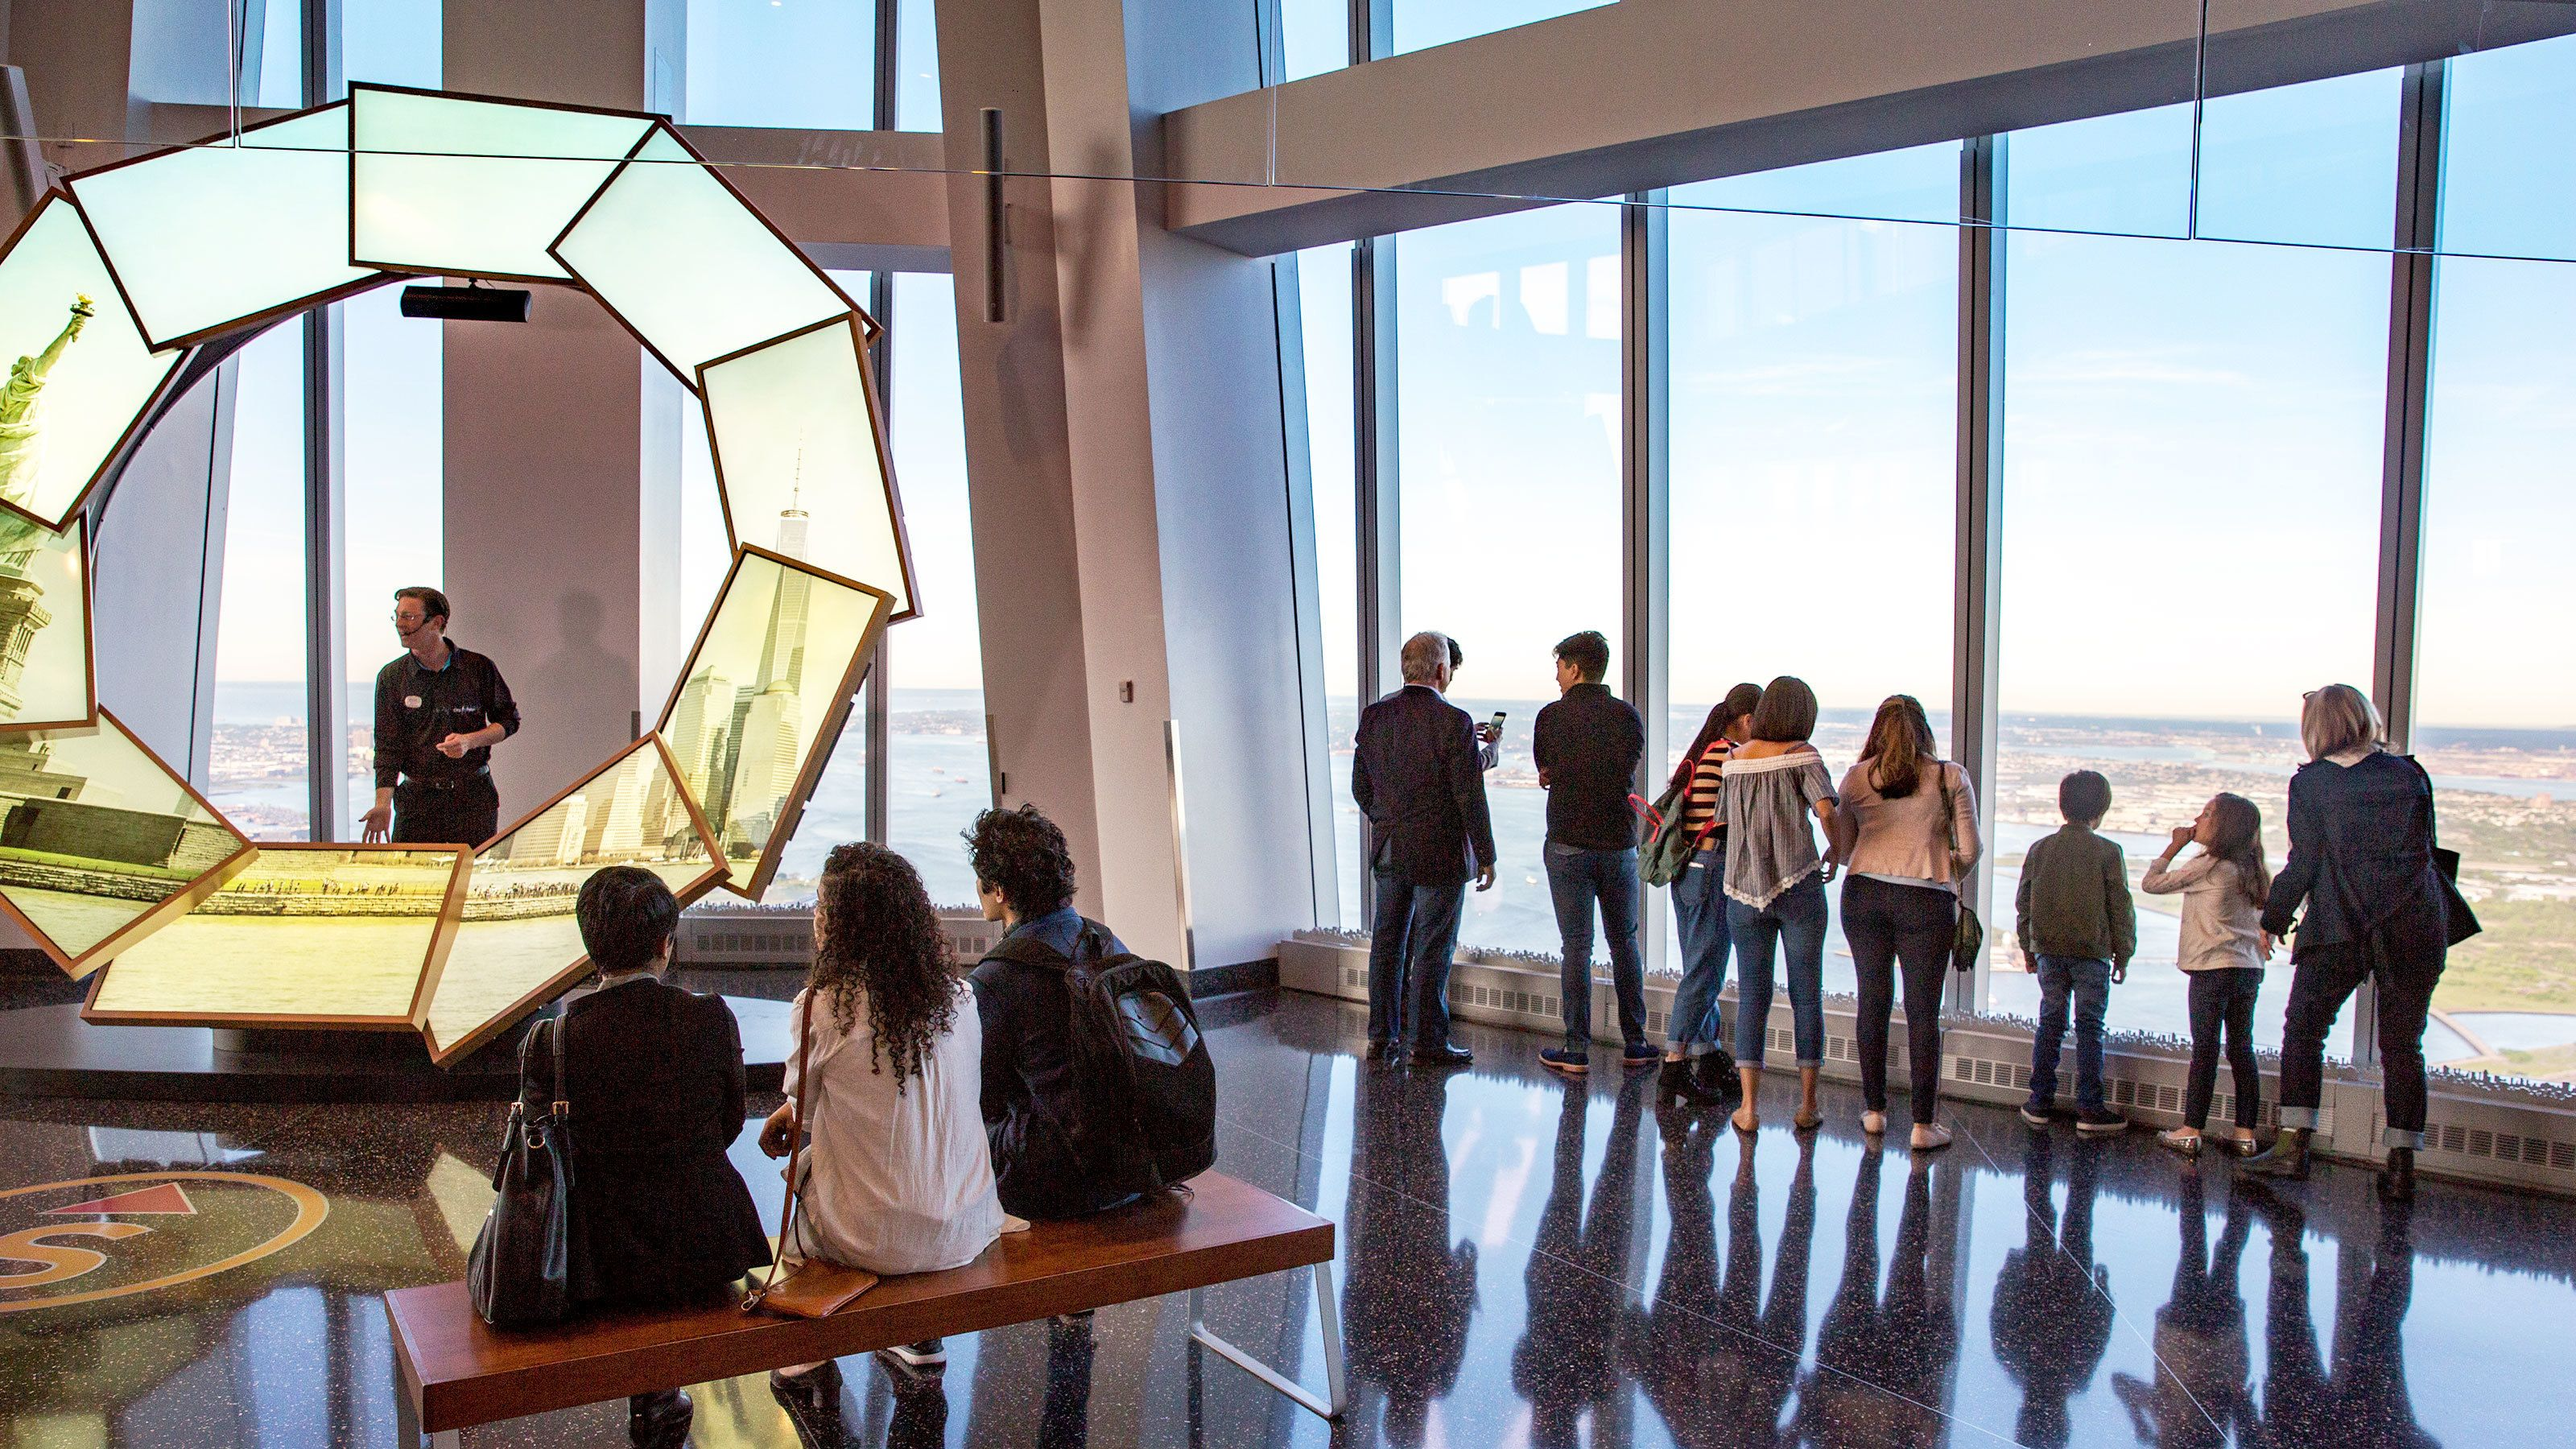 People at One World Observatory in New York